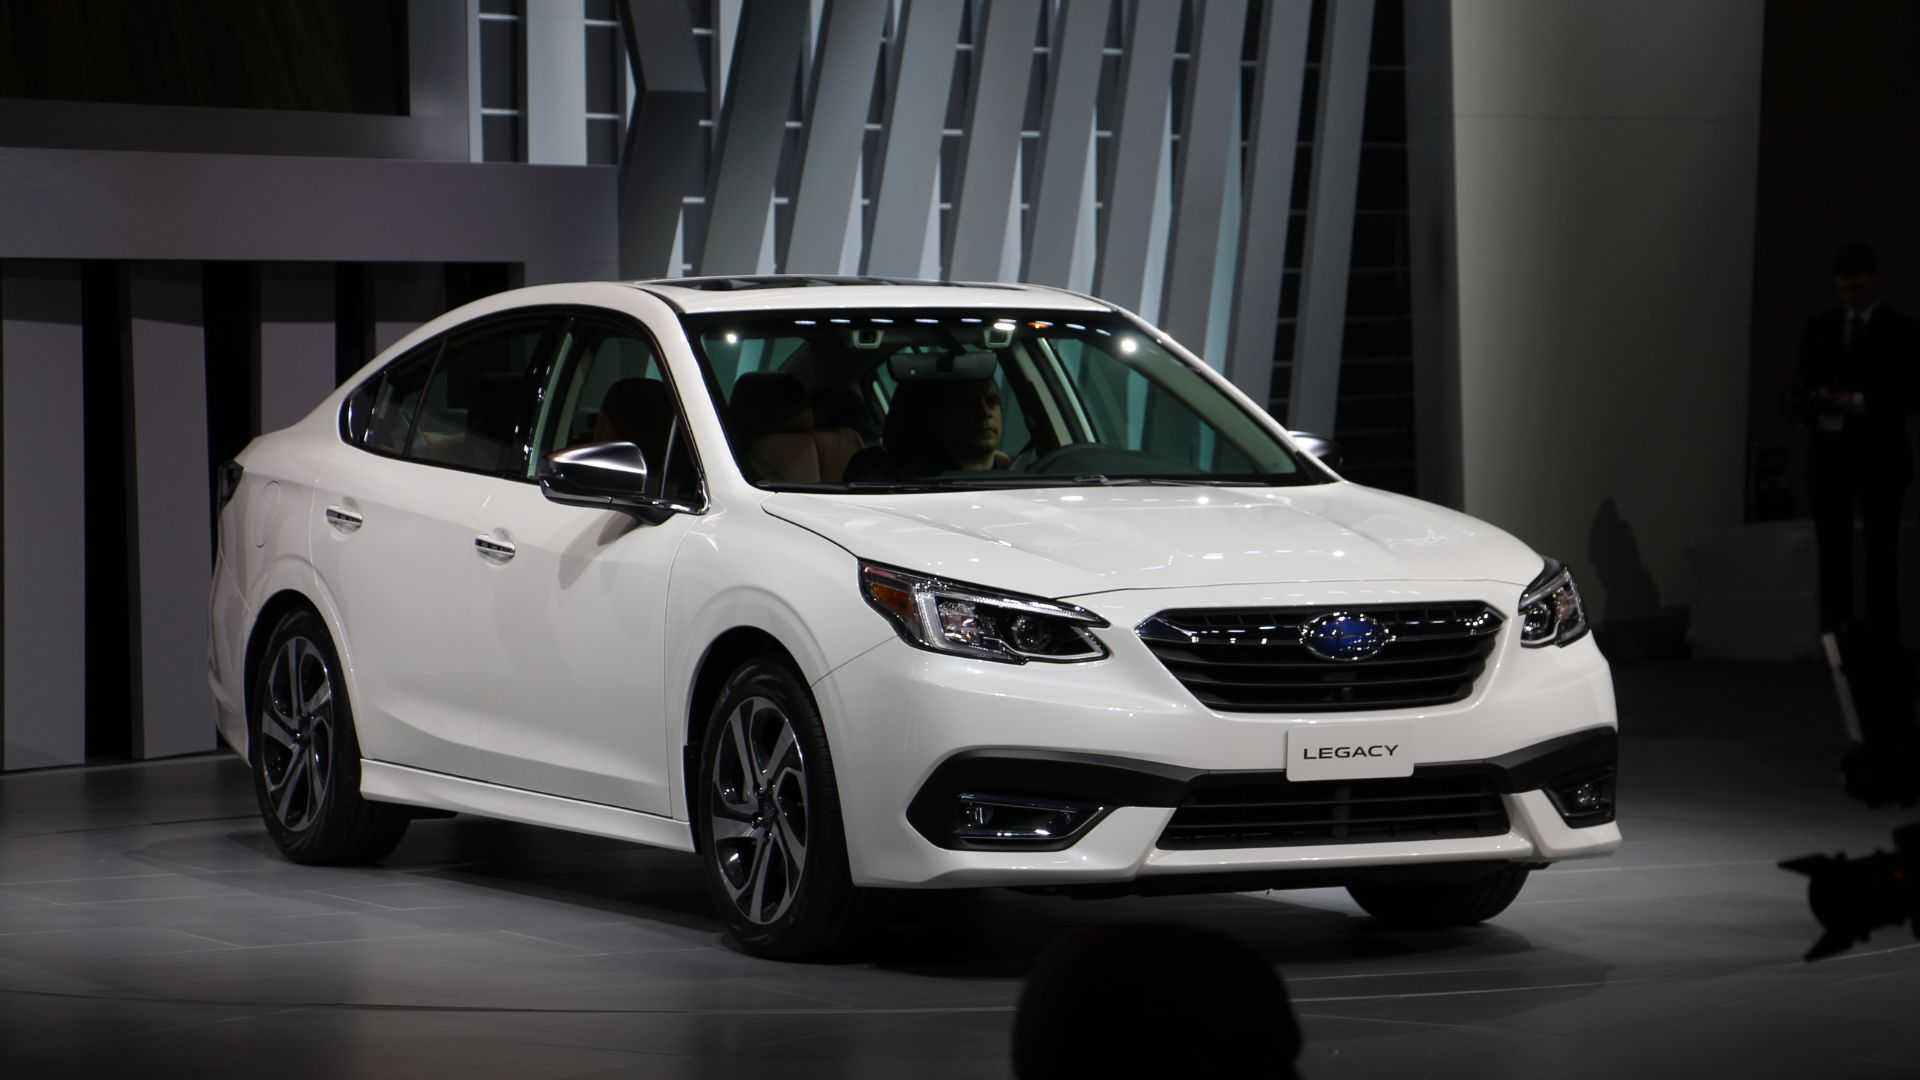 96 Best 2020 Subaru Legacy Turbo Wallpaper